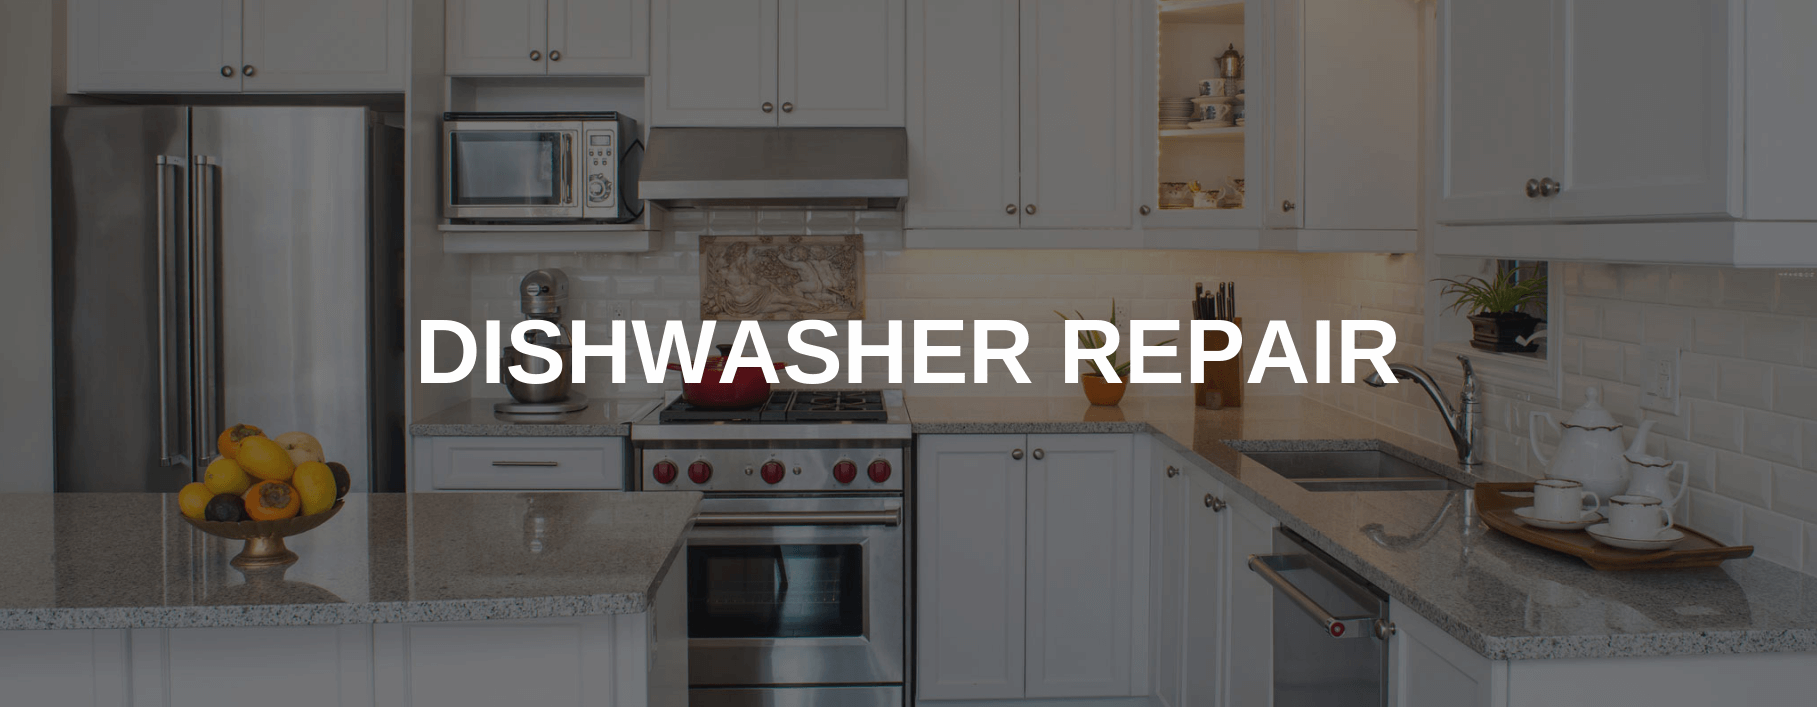 dishwasher repair mesa